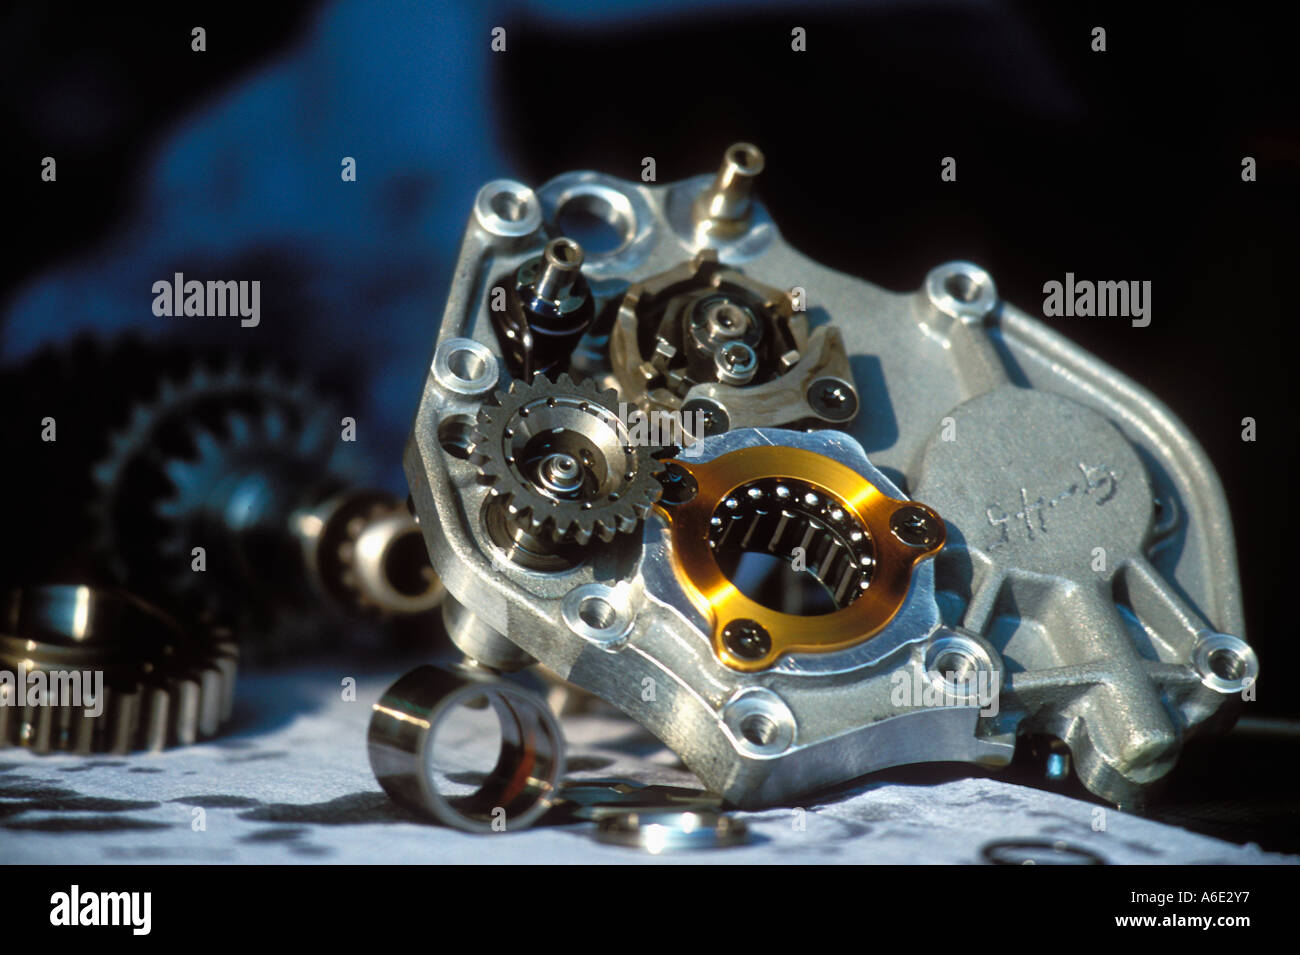 hight resolution of motorcycle racing gearbox